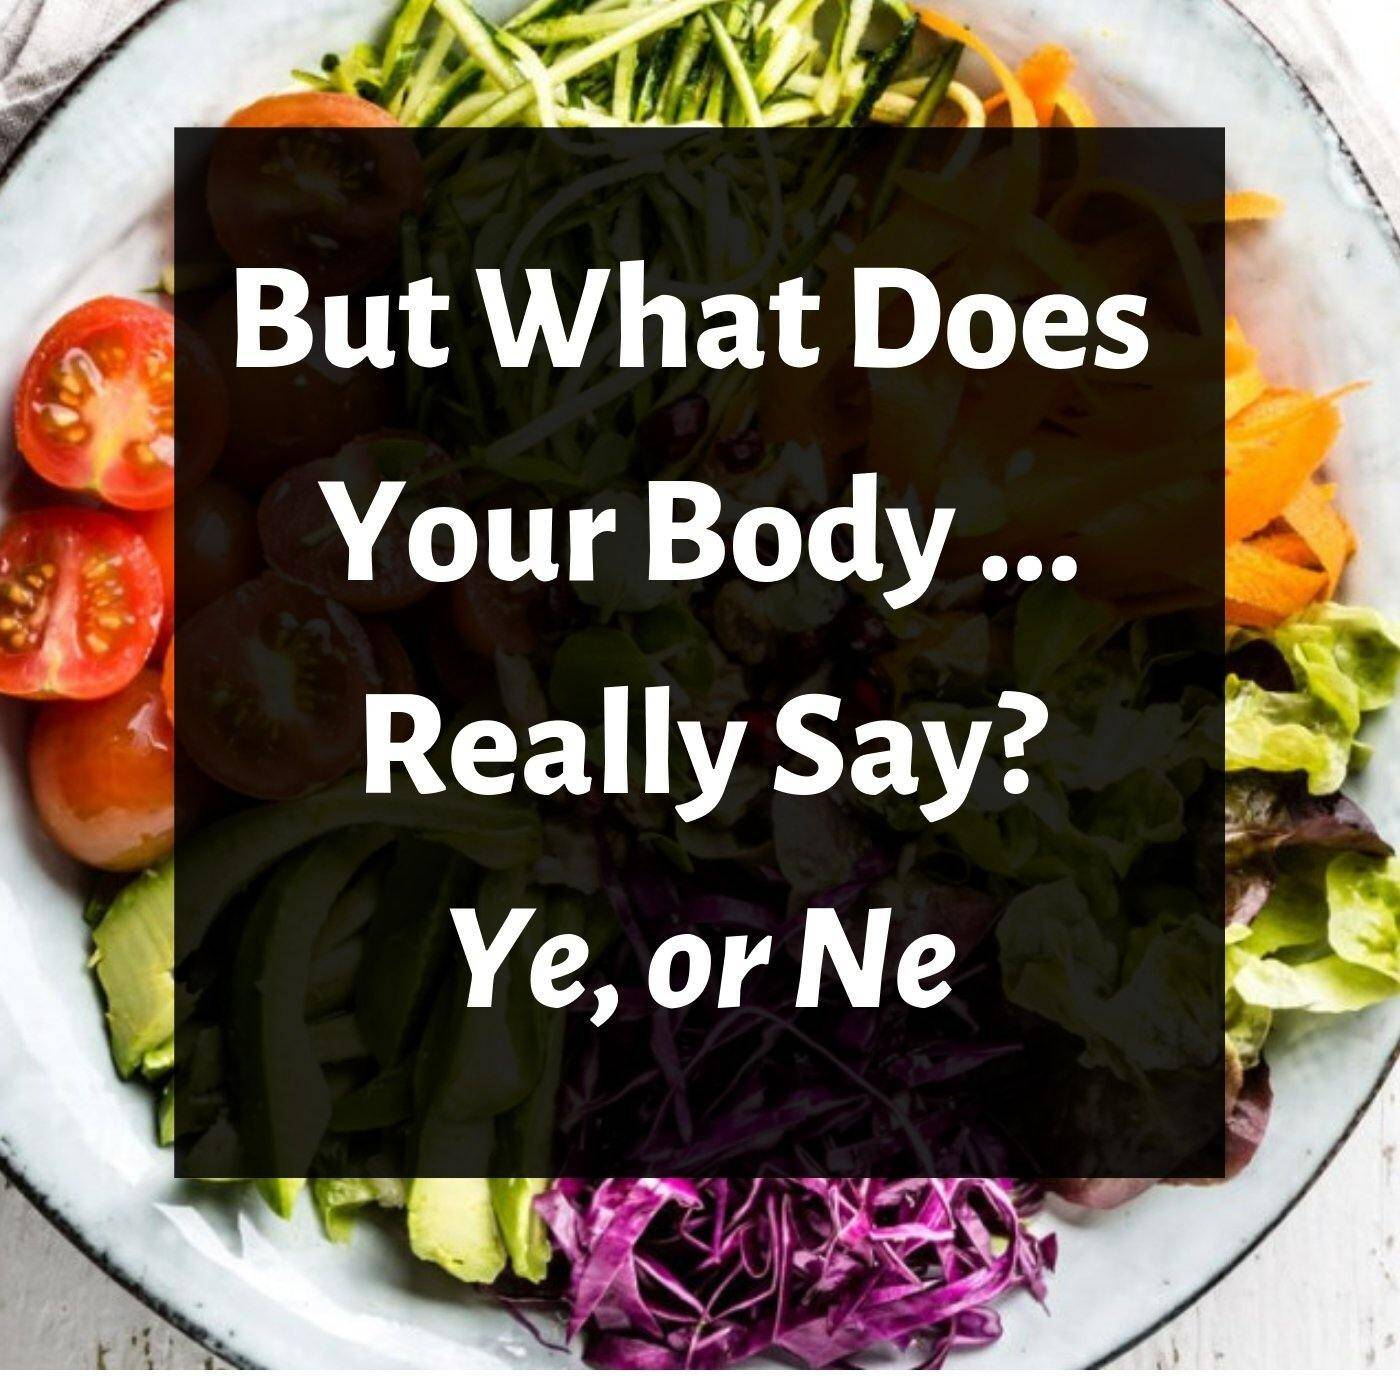 perfectionism and emotional eating quote reading 'but what does your body really say, yay or nay?